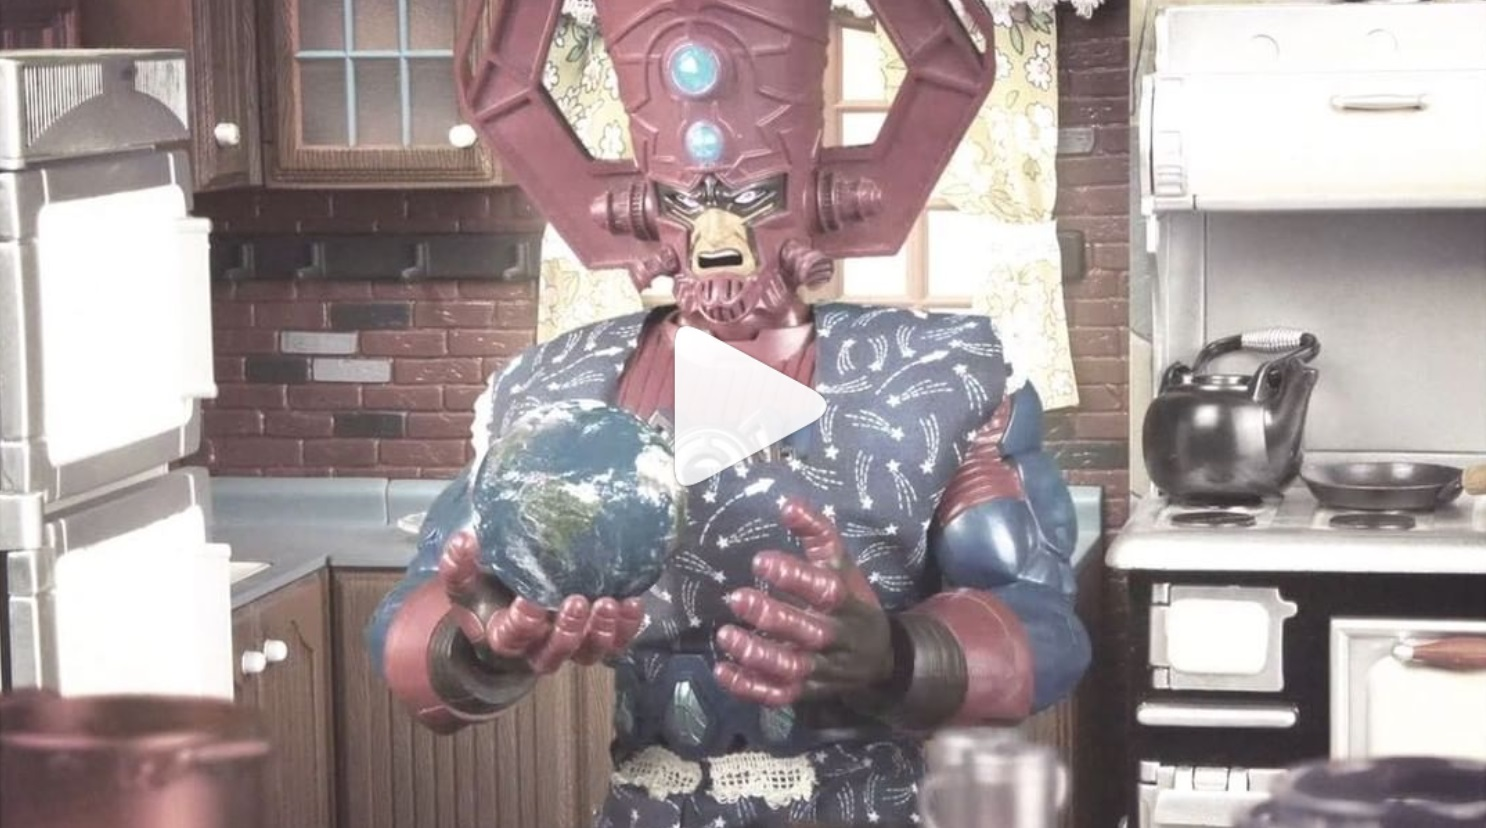 """""""COOKING W/ GALACTUS""""GALACTUS VOICE ACTING - This video was my introduction to doing work for Marvel Entertainment, on that fateful Earth Day in 2018. Galactus is my Michael Jordan, so this was like a dream come true for inner comic book nerd Jesse. I'm not going to say that it was easy to channel the might of Galactus, but it certainly came naturally. Ladies and germs, my spirit animal, Galactus."""